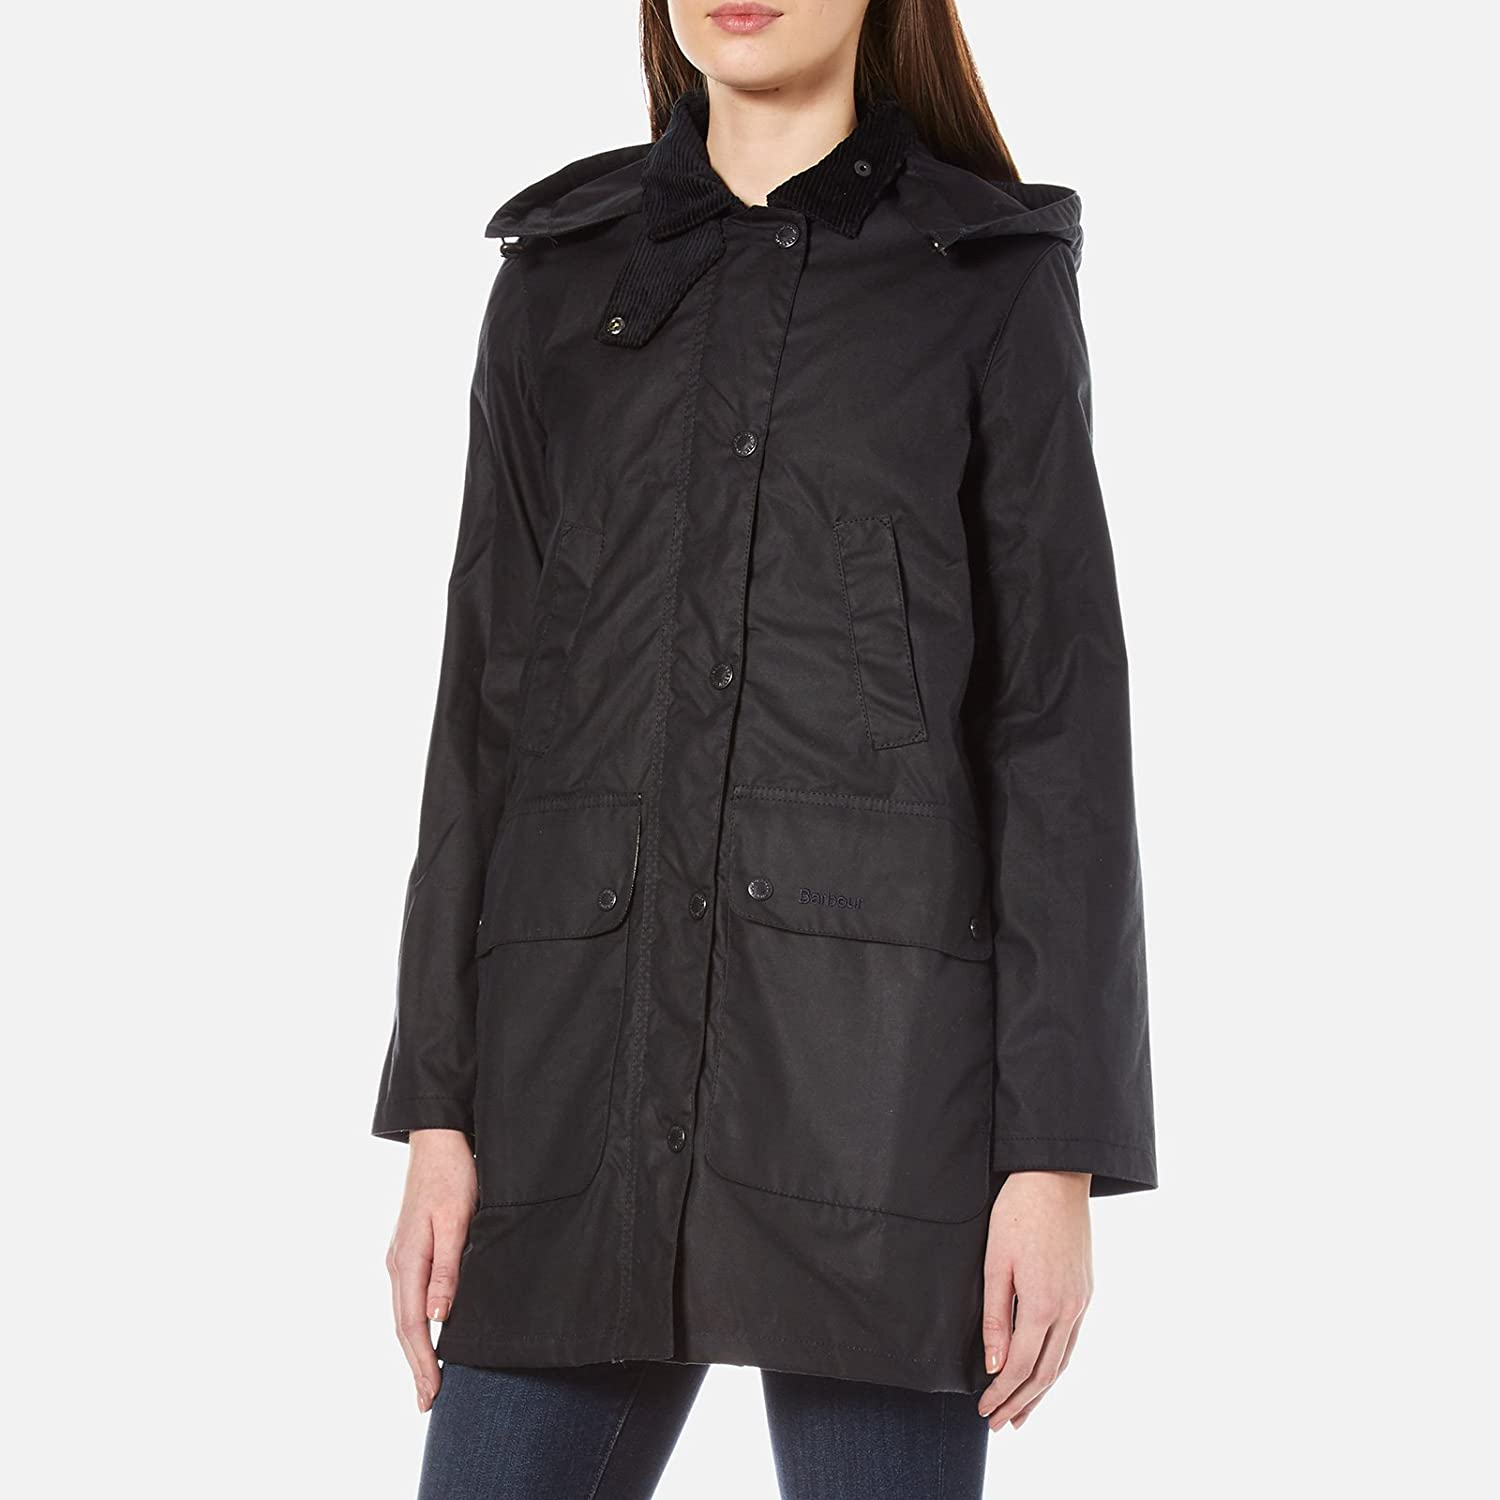 Barbour jacke border damen